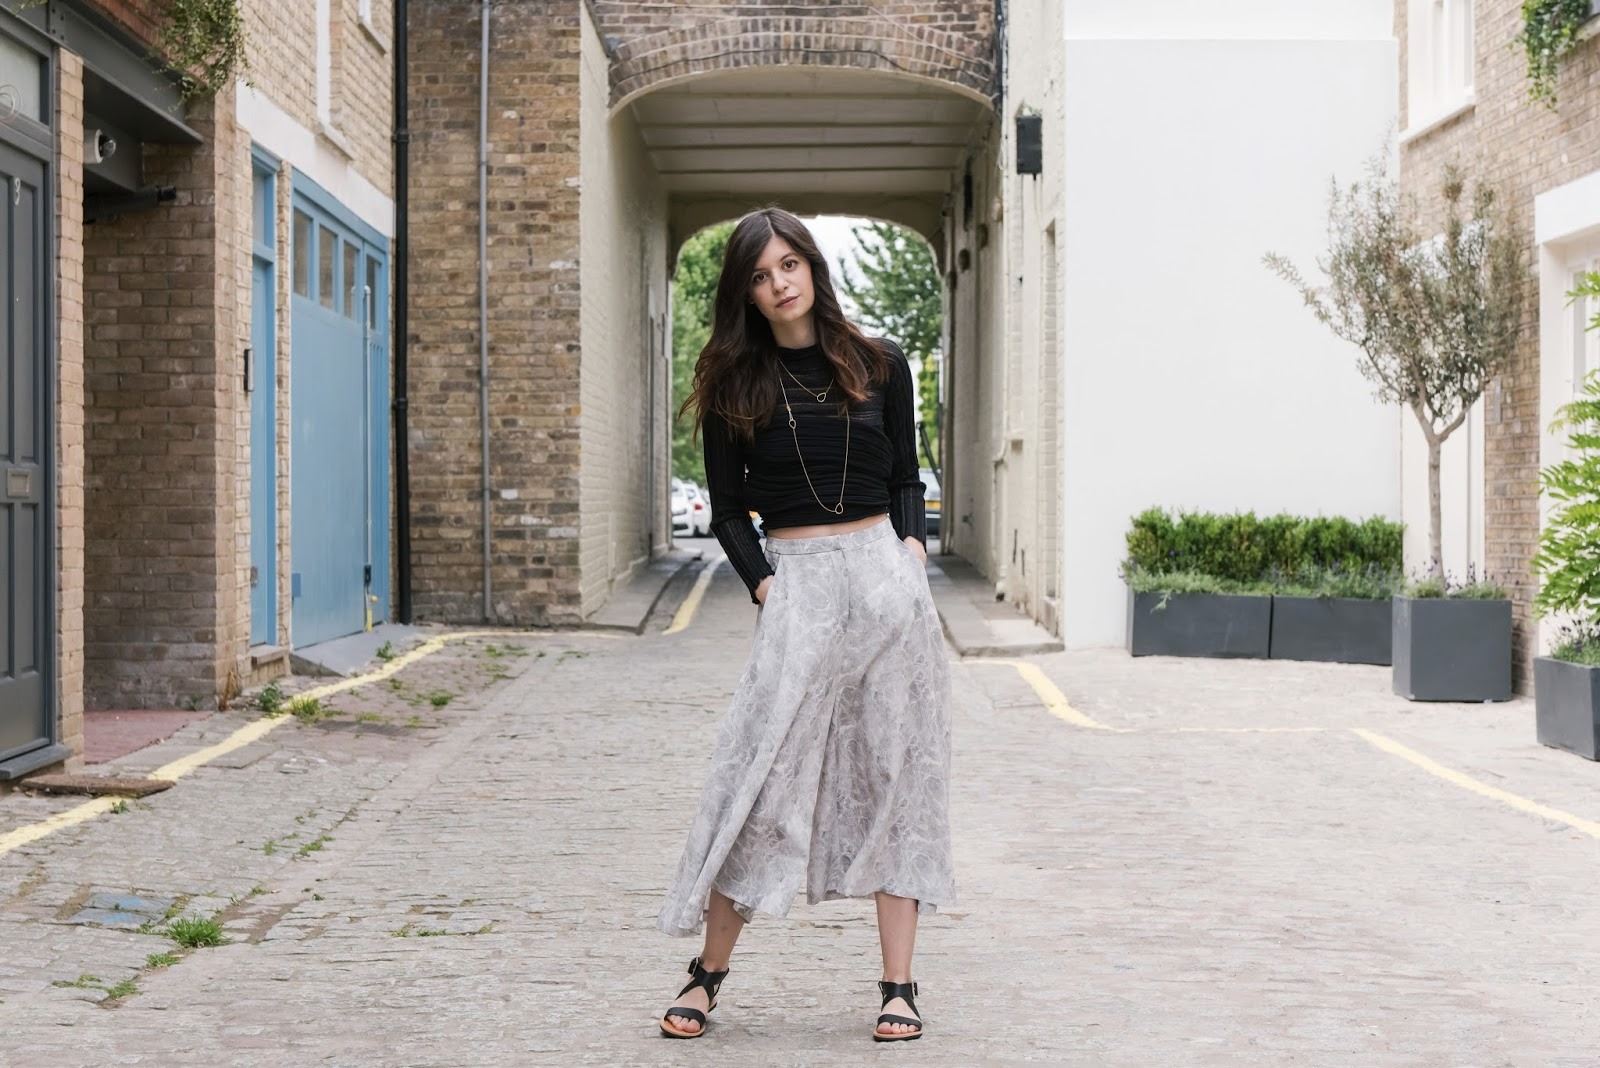 marble print, ioanna kourbela, v society, silk culottes, isapera sandals, isapera mykonos, greek fashion, greek designers, virginia tzioti, greek blogger, mono space notting hill, the mono space, pop up store